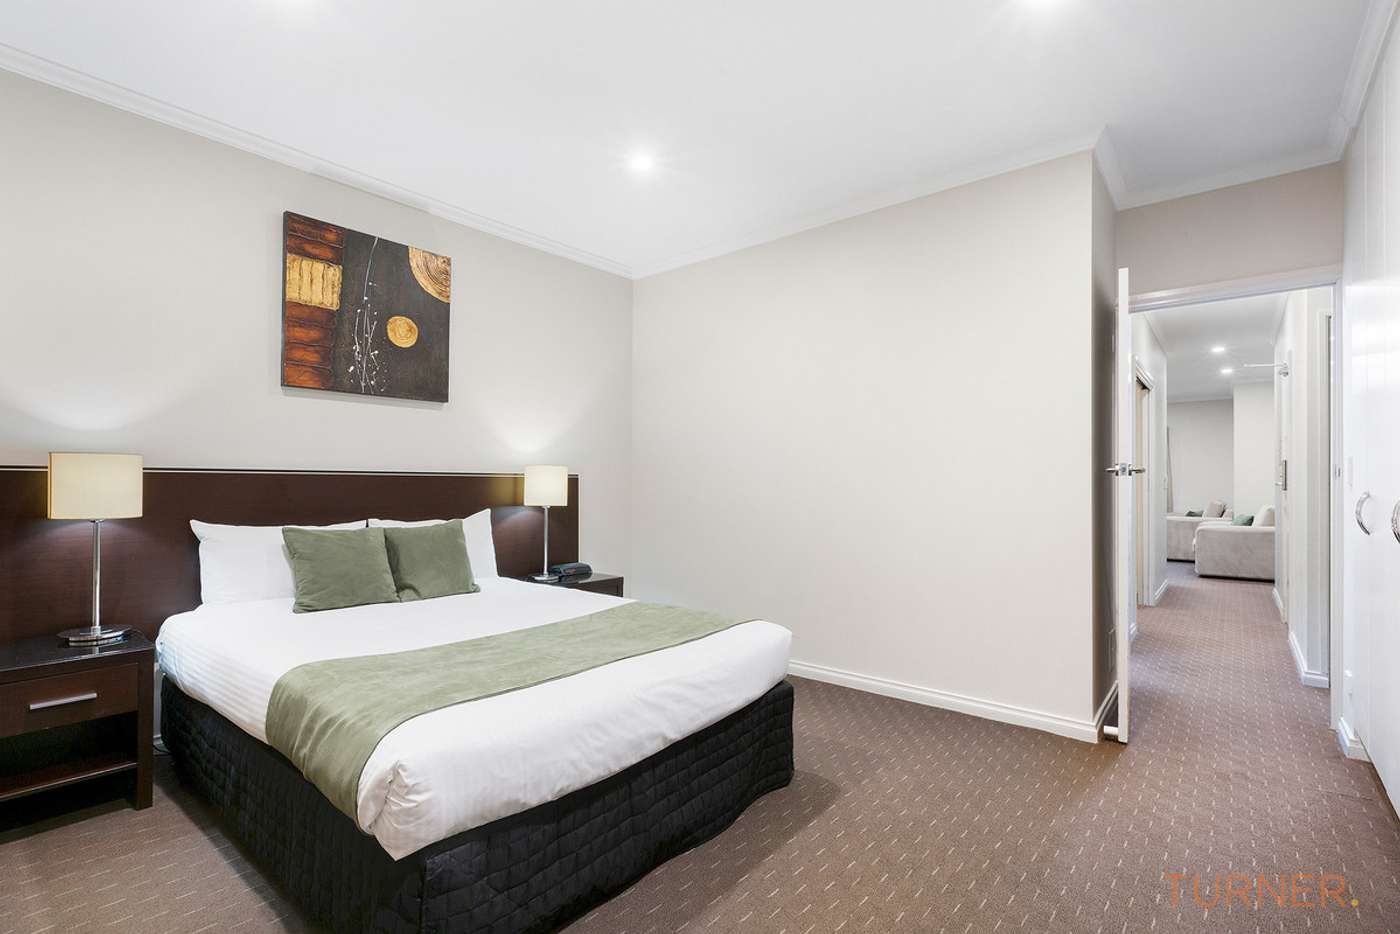 Sixth view of Homely apartment listing, 106/88 Frome Street, Adelaide SA 5000